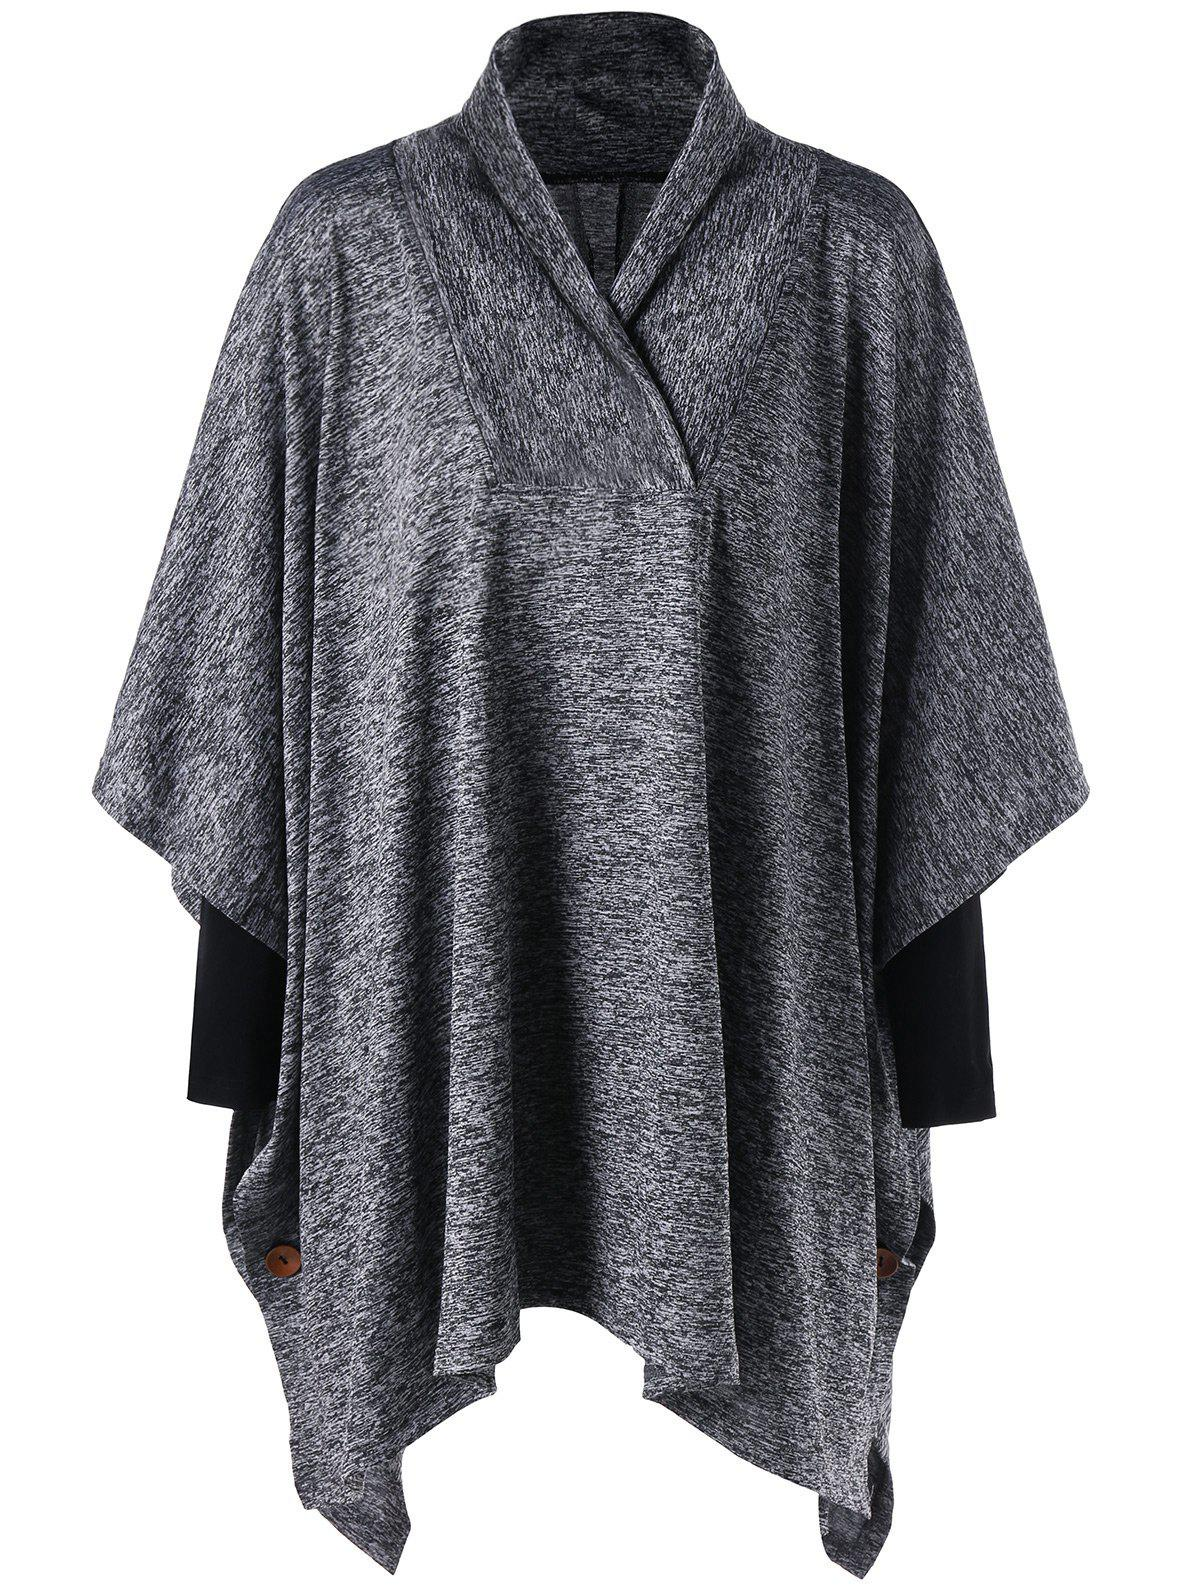 Plus Size Shawl Collar Tunic TopWOMEN<br><br>Size: 3XL; Color: GRAY; Material: Polyester; Shirt Length: Long; Sleeve Length: Three Quarter; Collar: Shawl Collar; Style: Casual; Season: Fall,Spring; Pattern Type: Solid; Weight: 0.4830kg; Package Contents: 1 x Top;